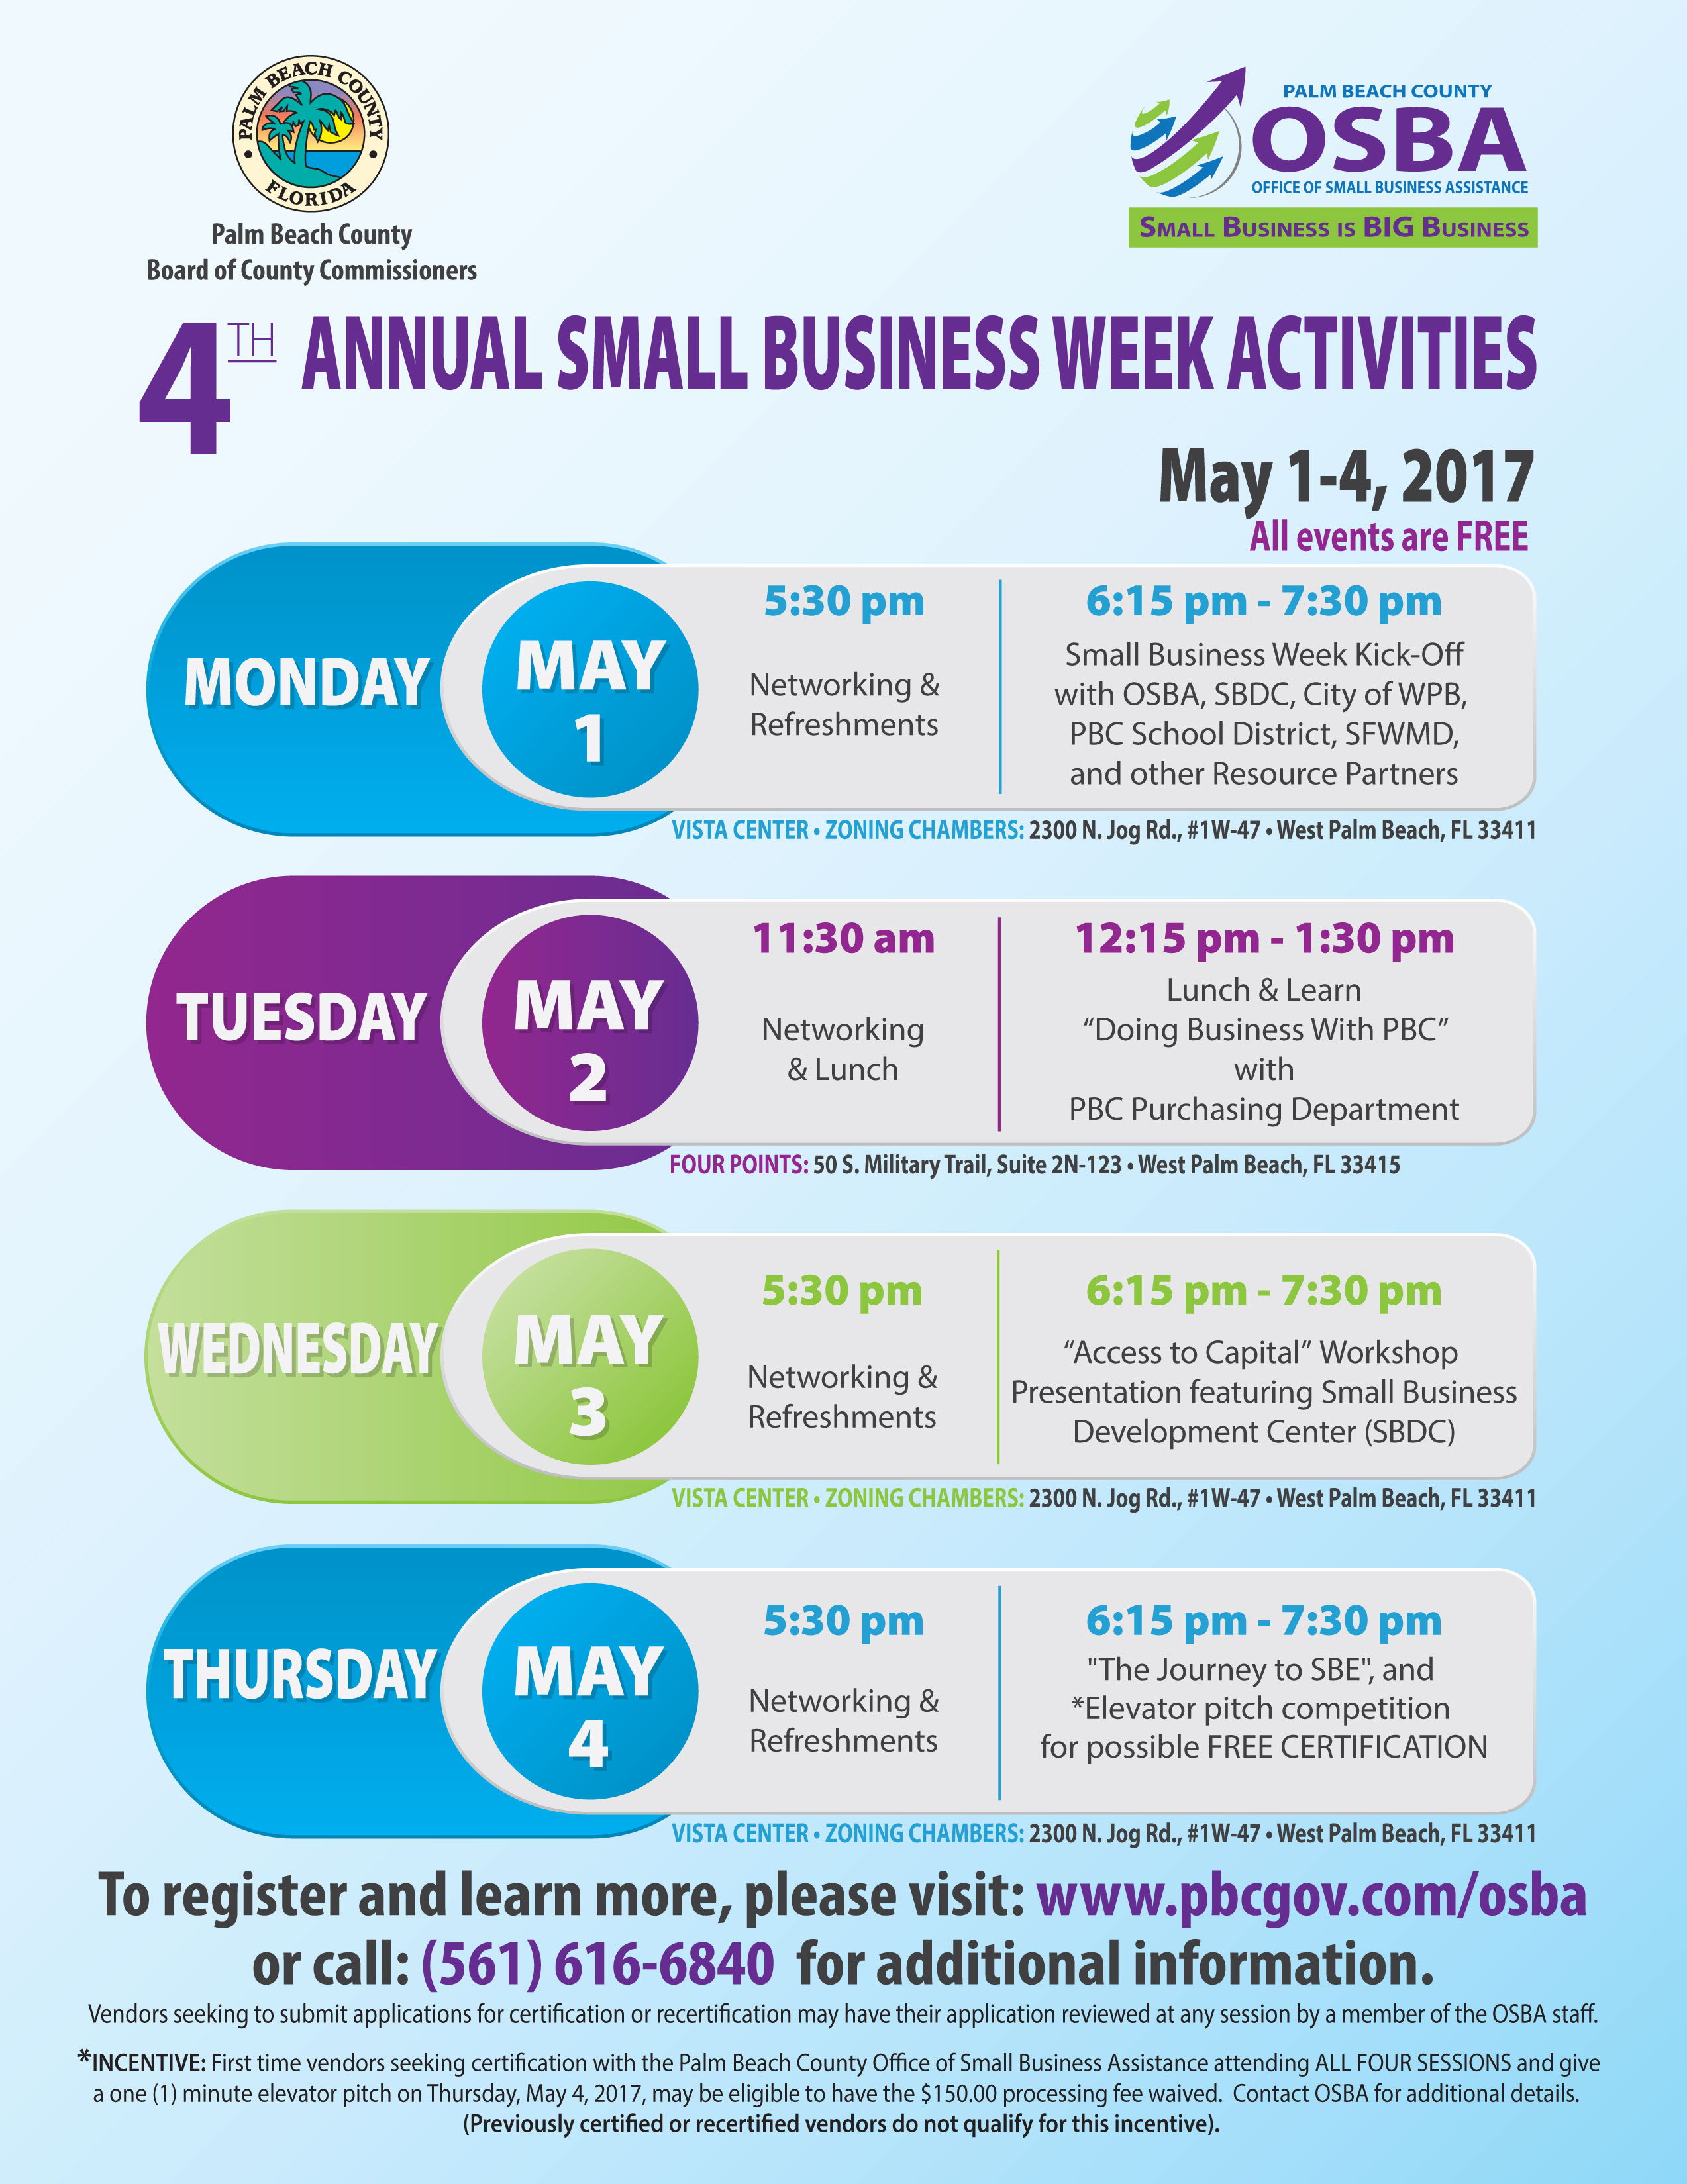 OSBA_Small-Business-Week-20